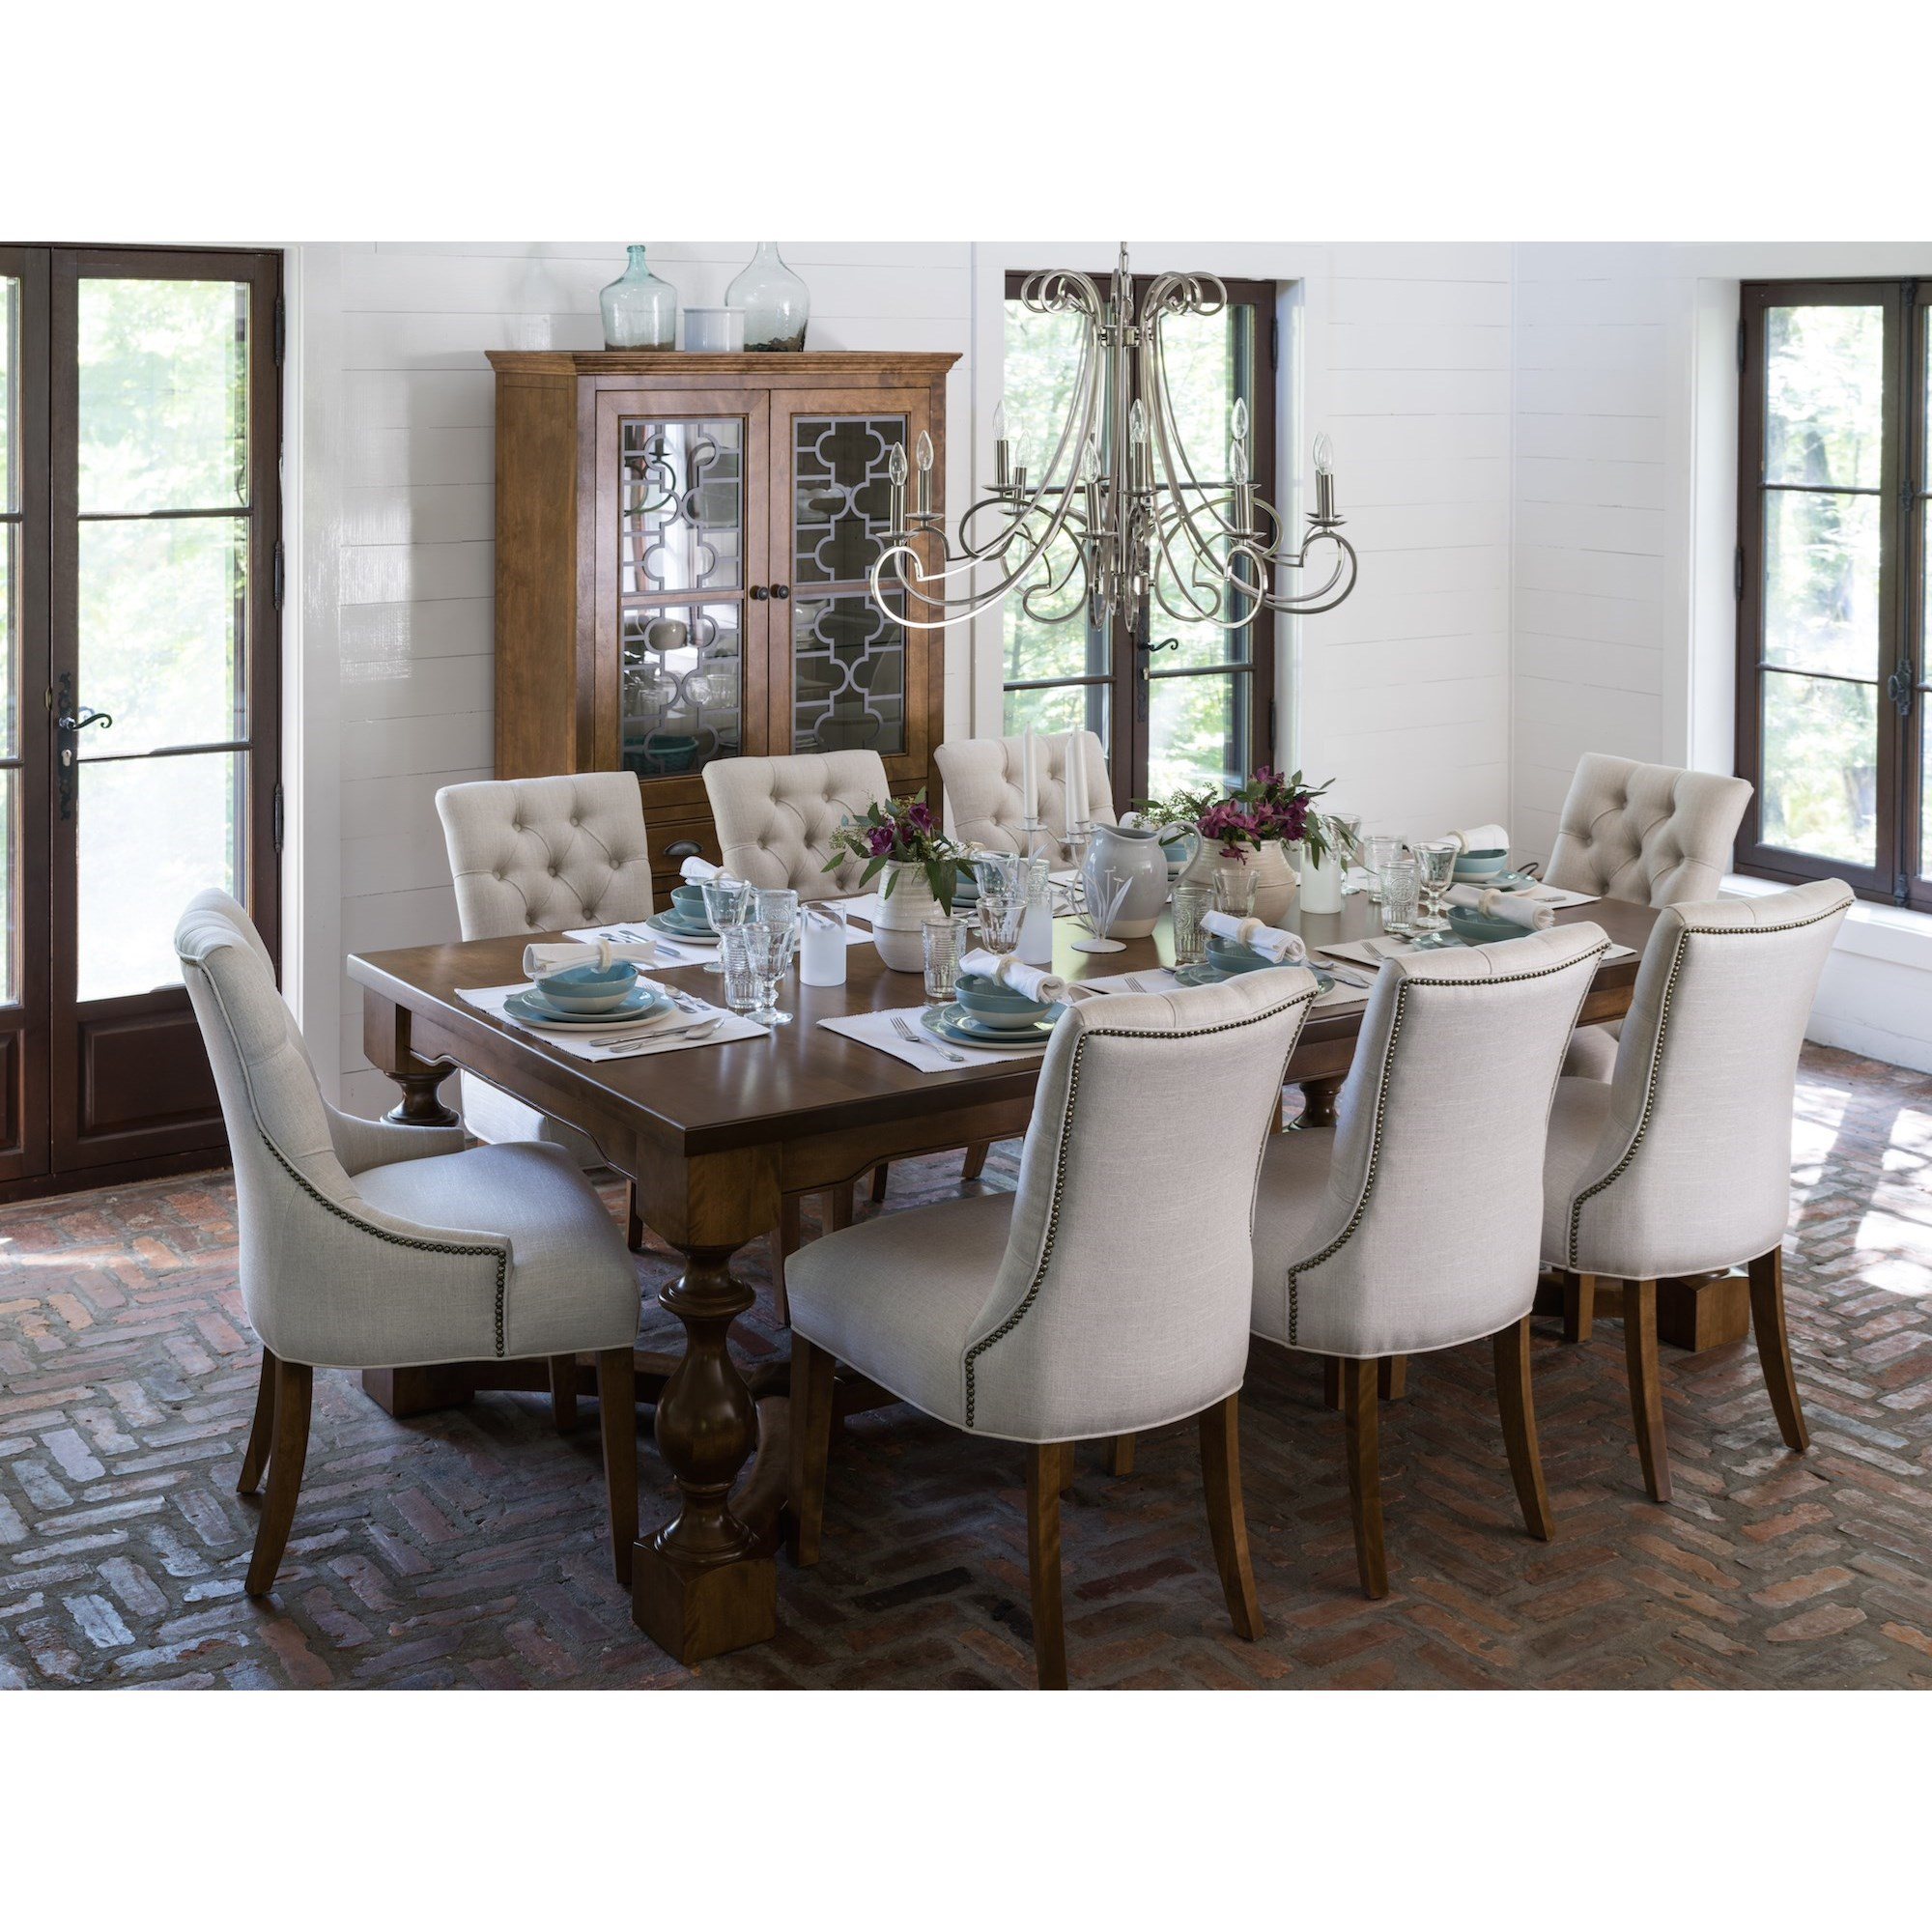 Superior Canadel Farmhouse ChicDining Room Group ...